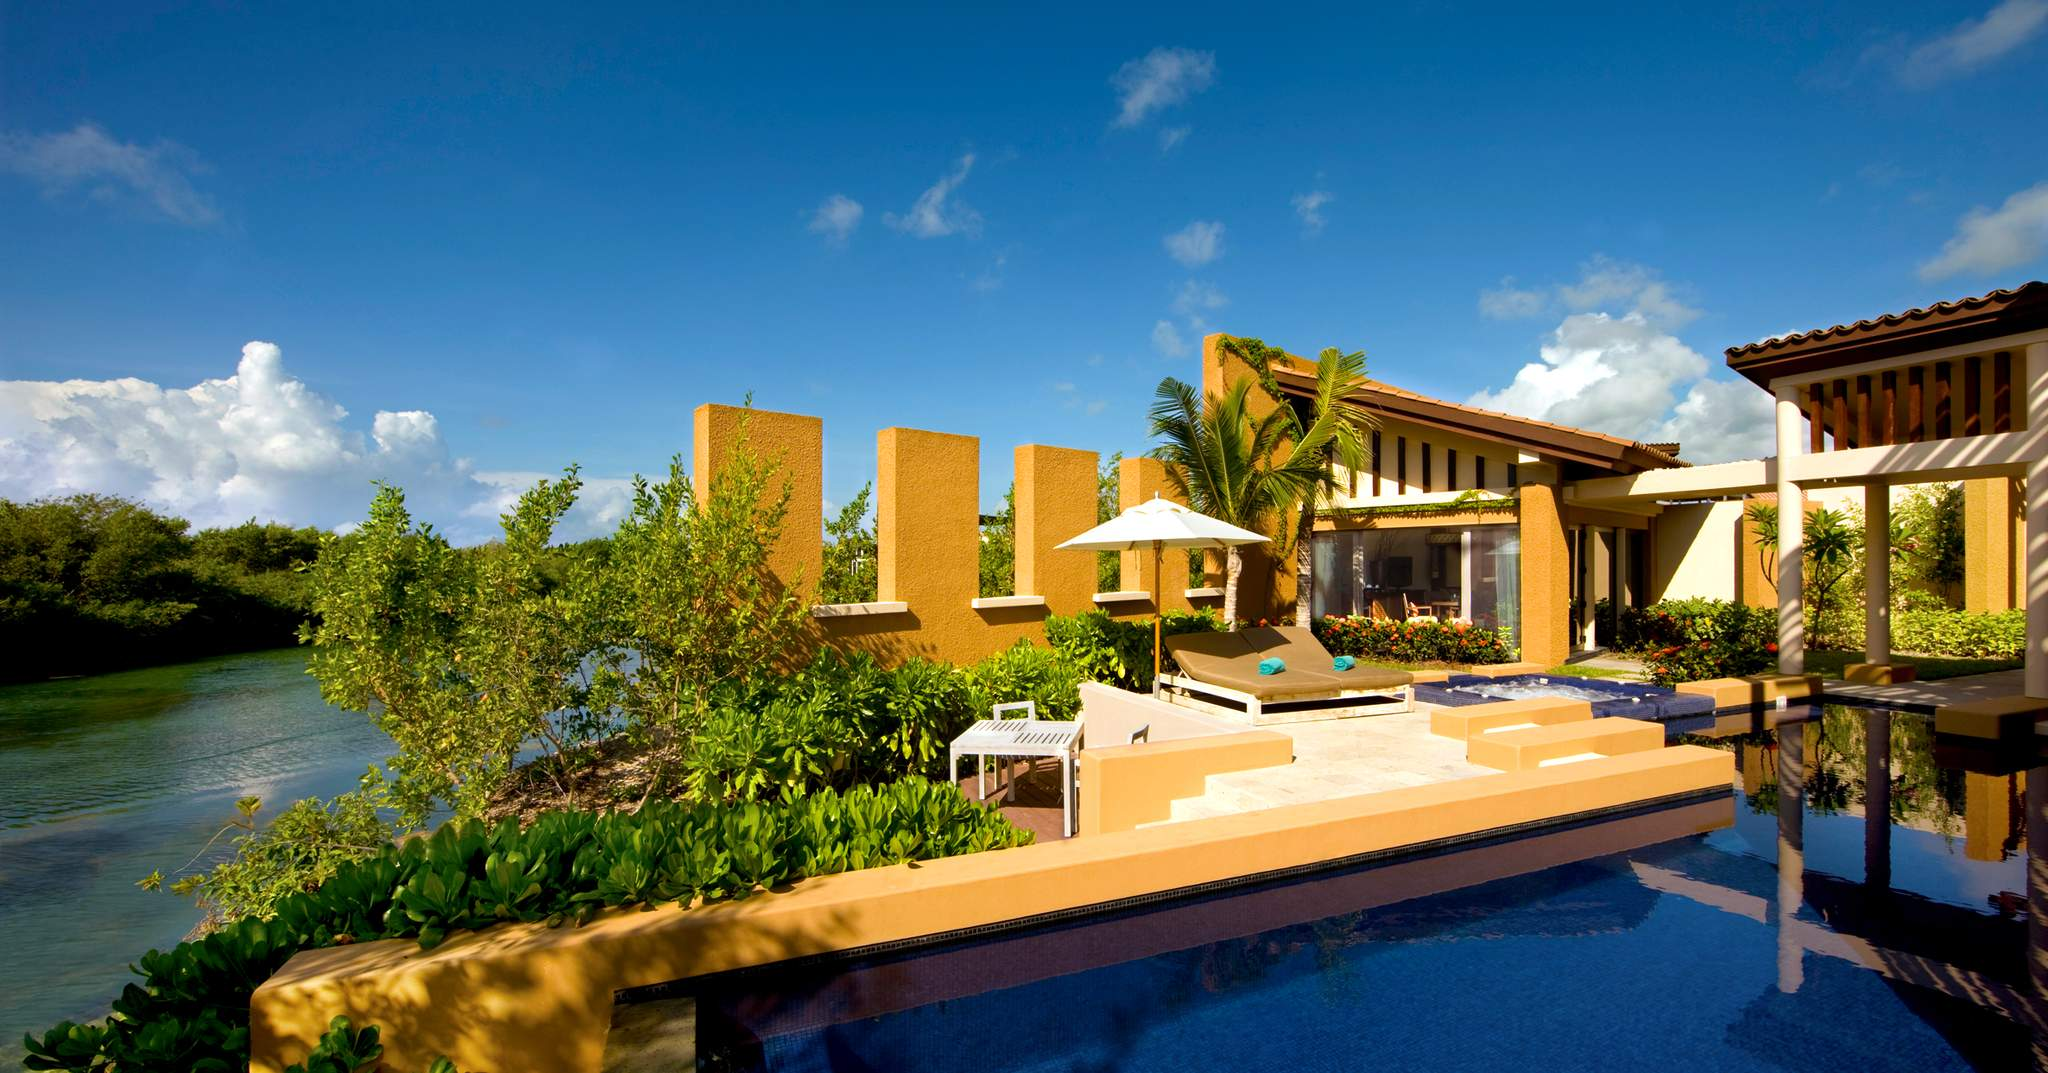 banyan tree in america and europe Banyan tree mayakoba is an impeccably stylish luxury villa resort with fantastic spa set amongst mangroves and lagoons on the famed riviera maya coast of mexico.